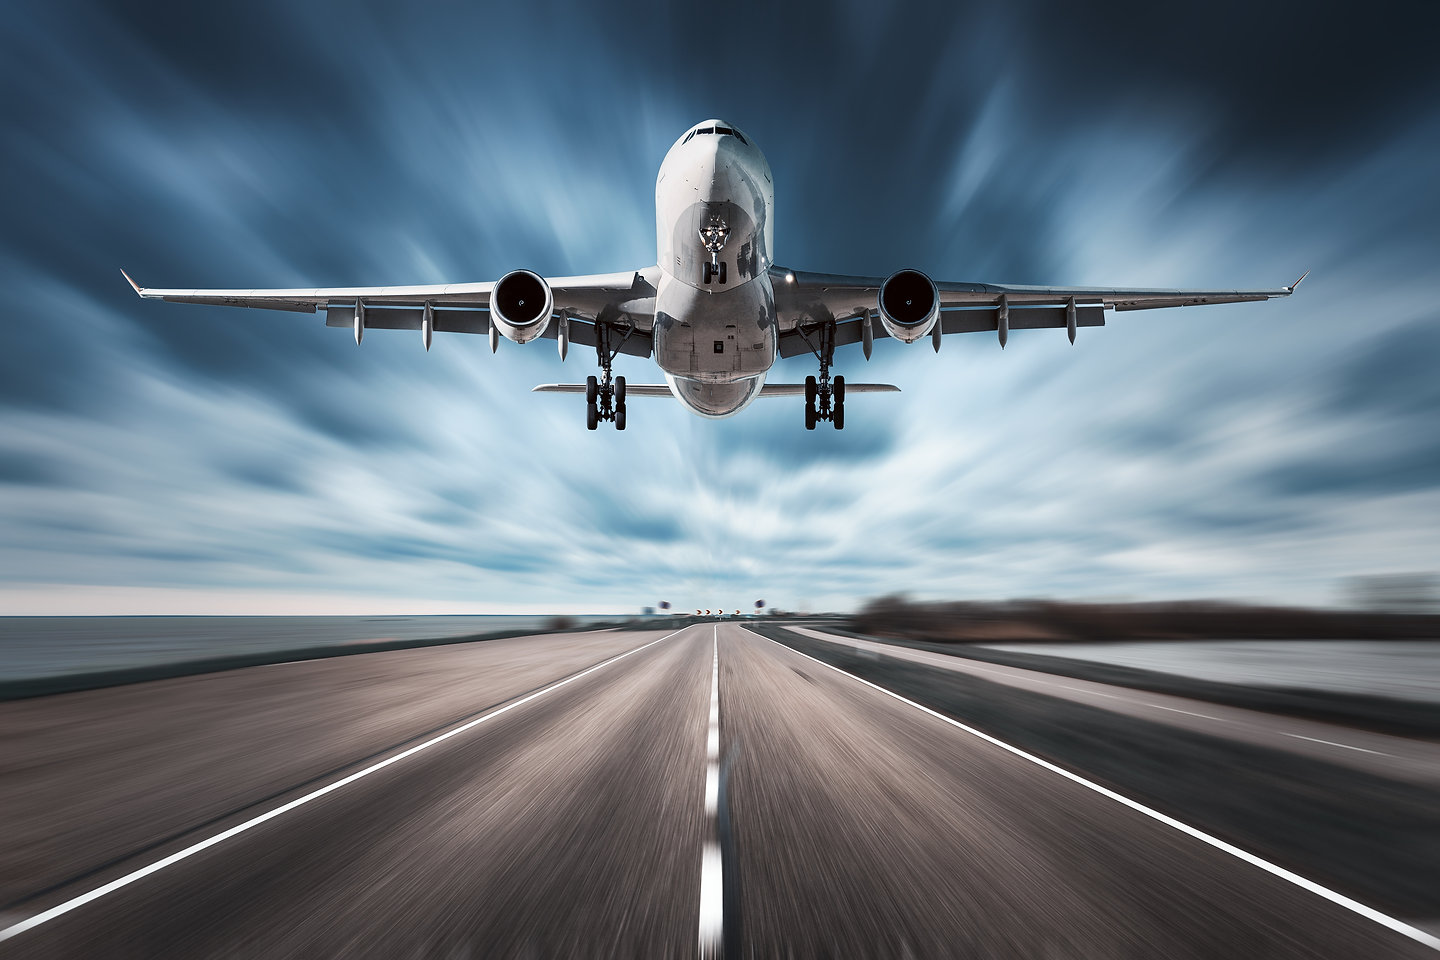 Airplane And Road With Motion Blur Effec